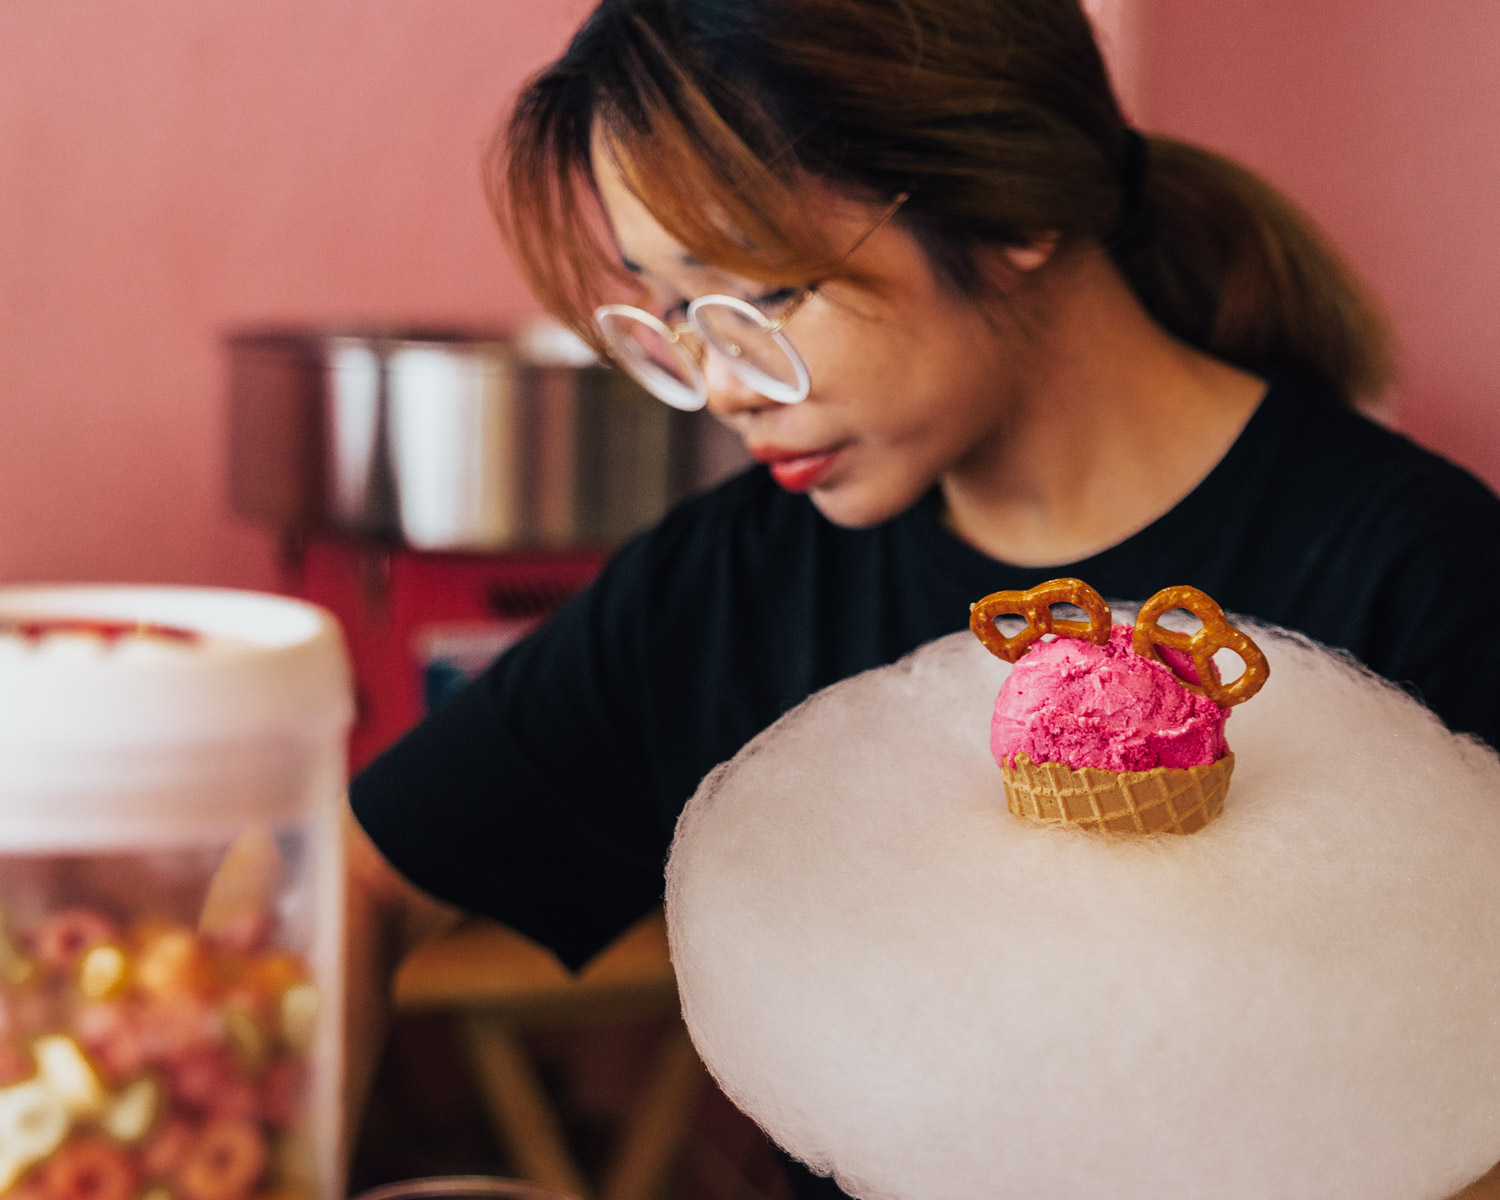 Torna Donna in the making at Pink Planter Café in Bangkok, Thailand